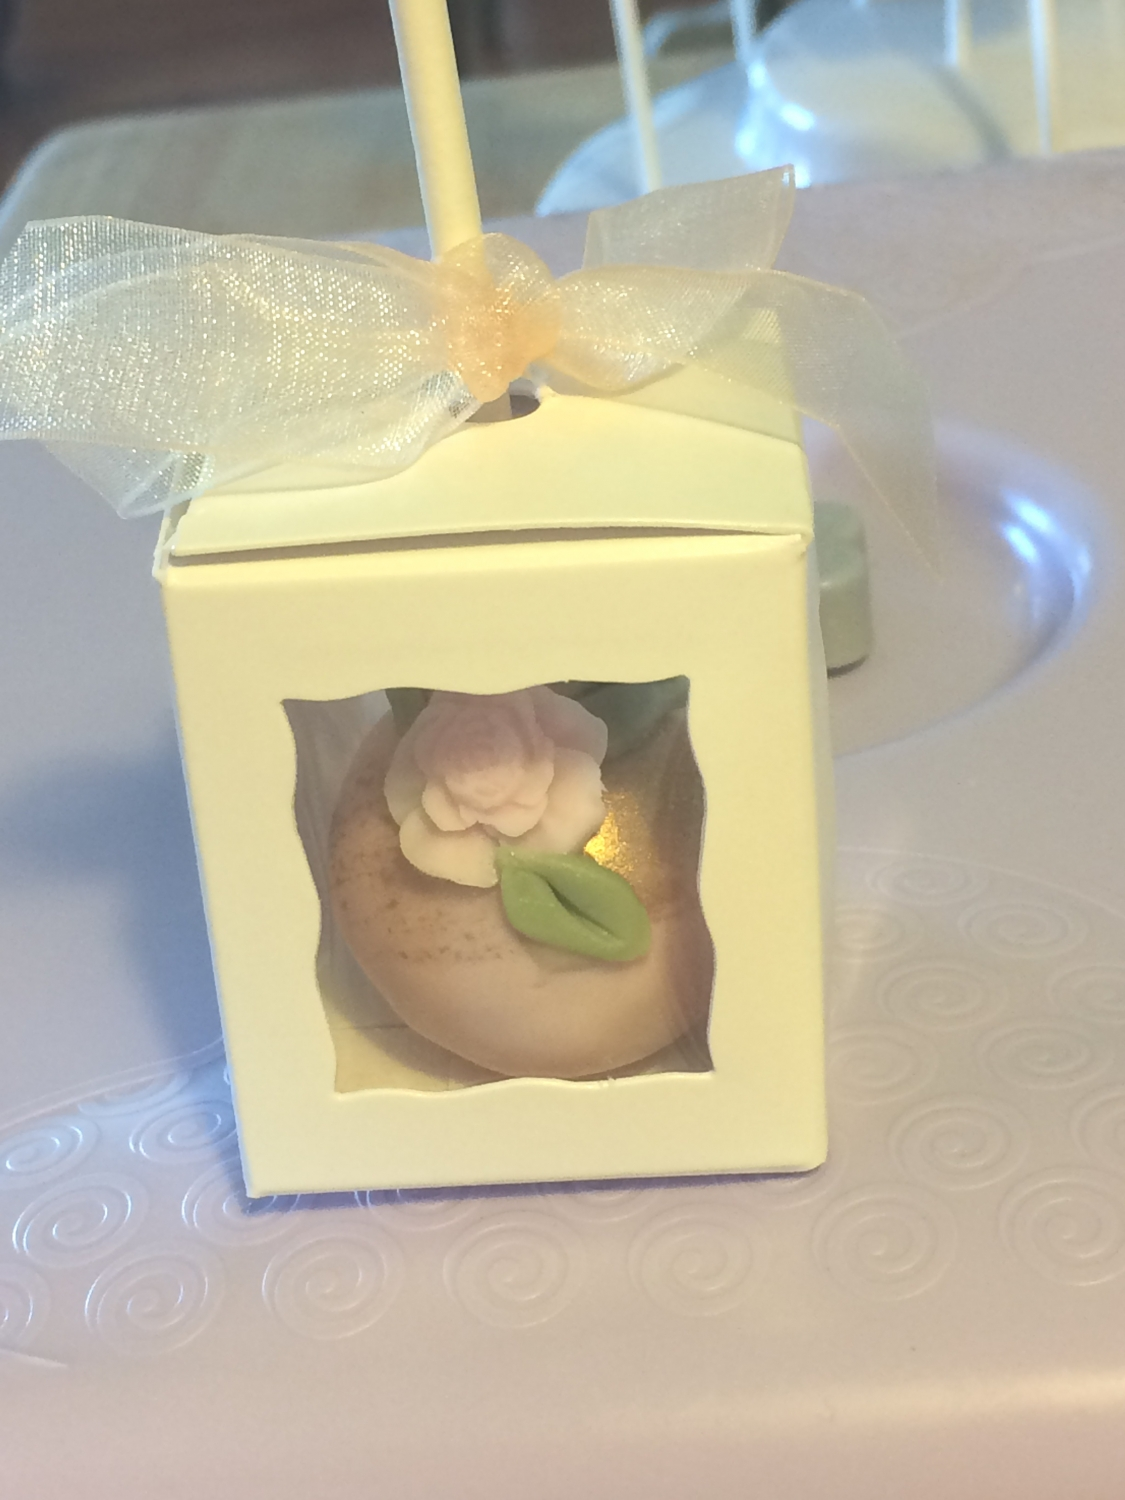 Excellent Little Cake Pop Singles Box So Cute And Dainty With My Ballerina Inside Easy To Emble